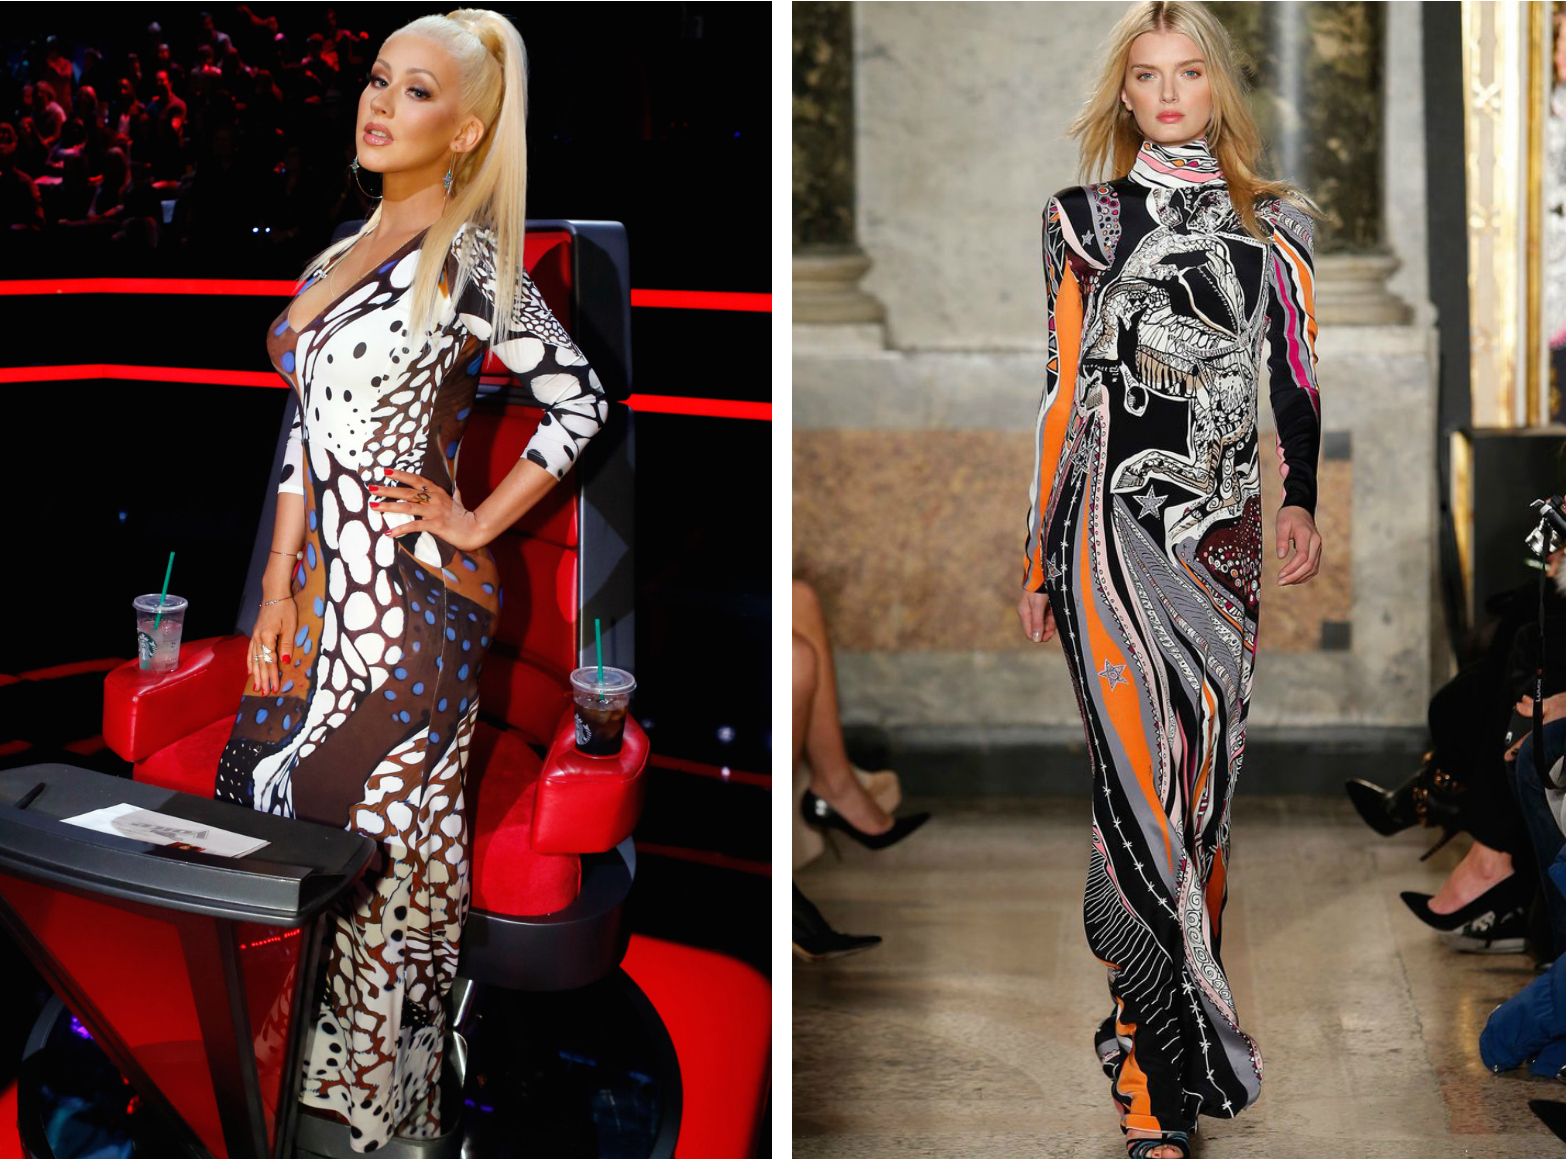 From left to right: Christina Aguilera wearing a printed max dress on The Voice, and the Emilio Pucci Fall 2015 Collection.